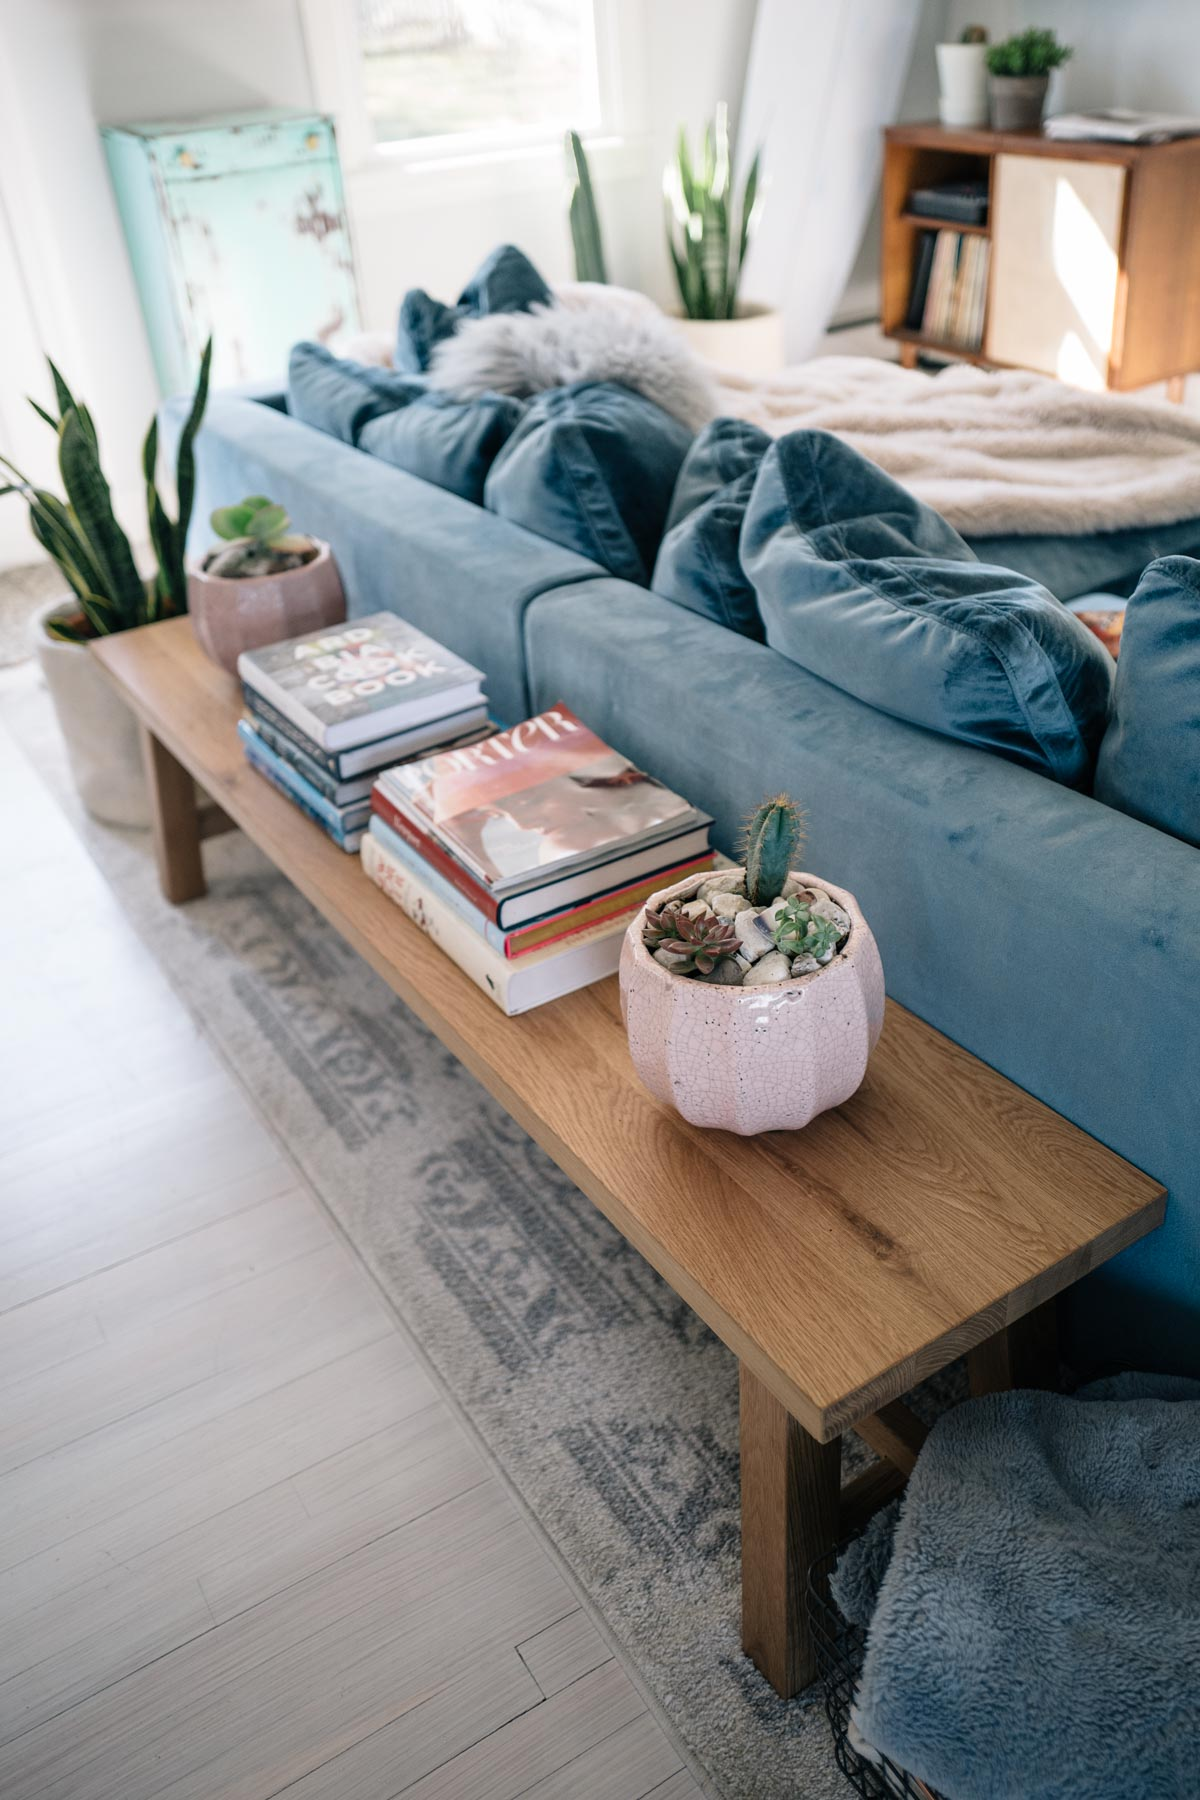 Jess Ann Kirby styles her living room with stylish pieces like a terracotta pot from Anthropologie